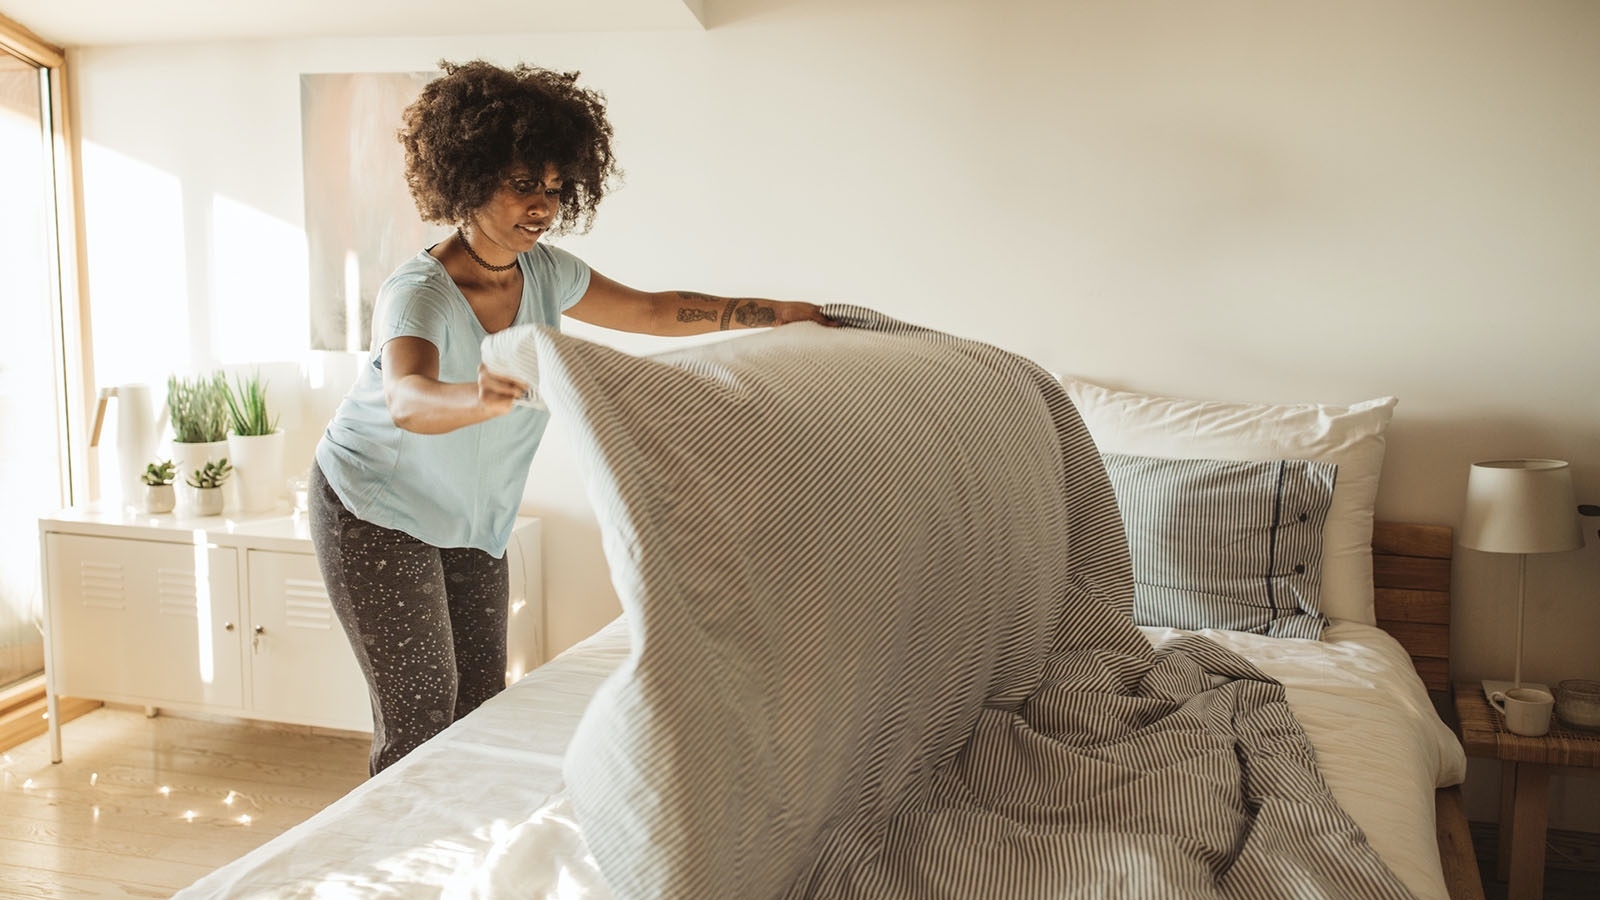 Intrinsic Motivation Person Making Bed